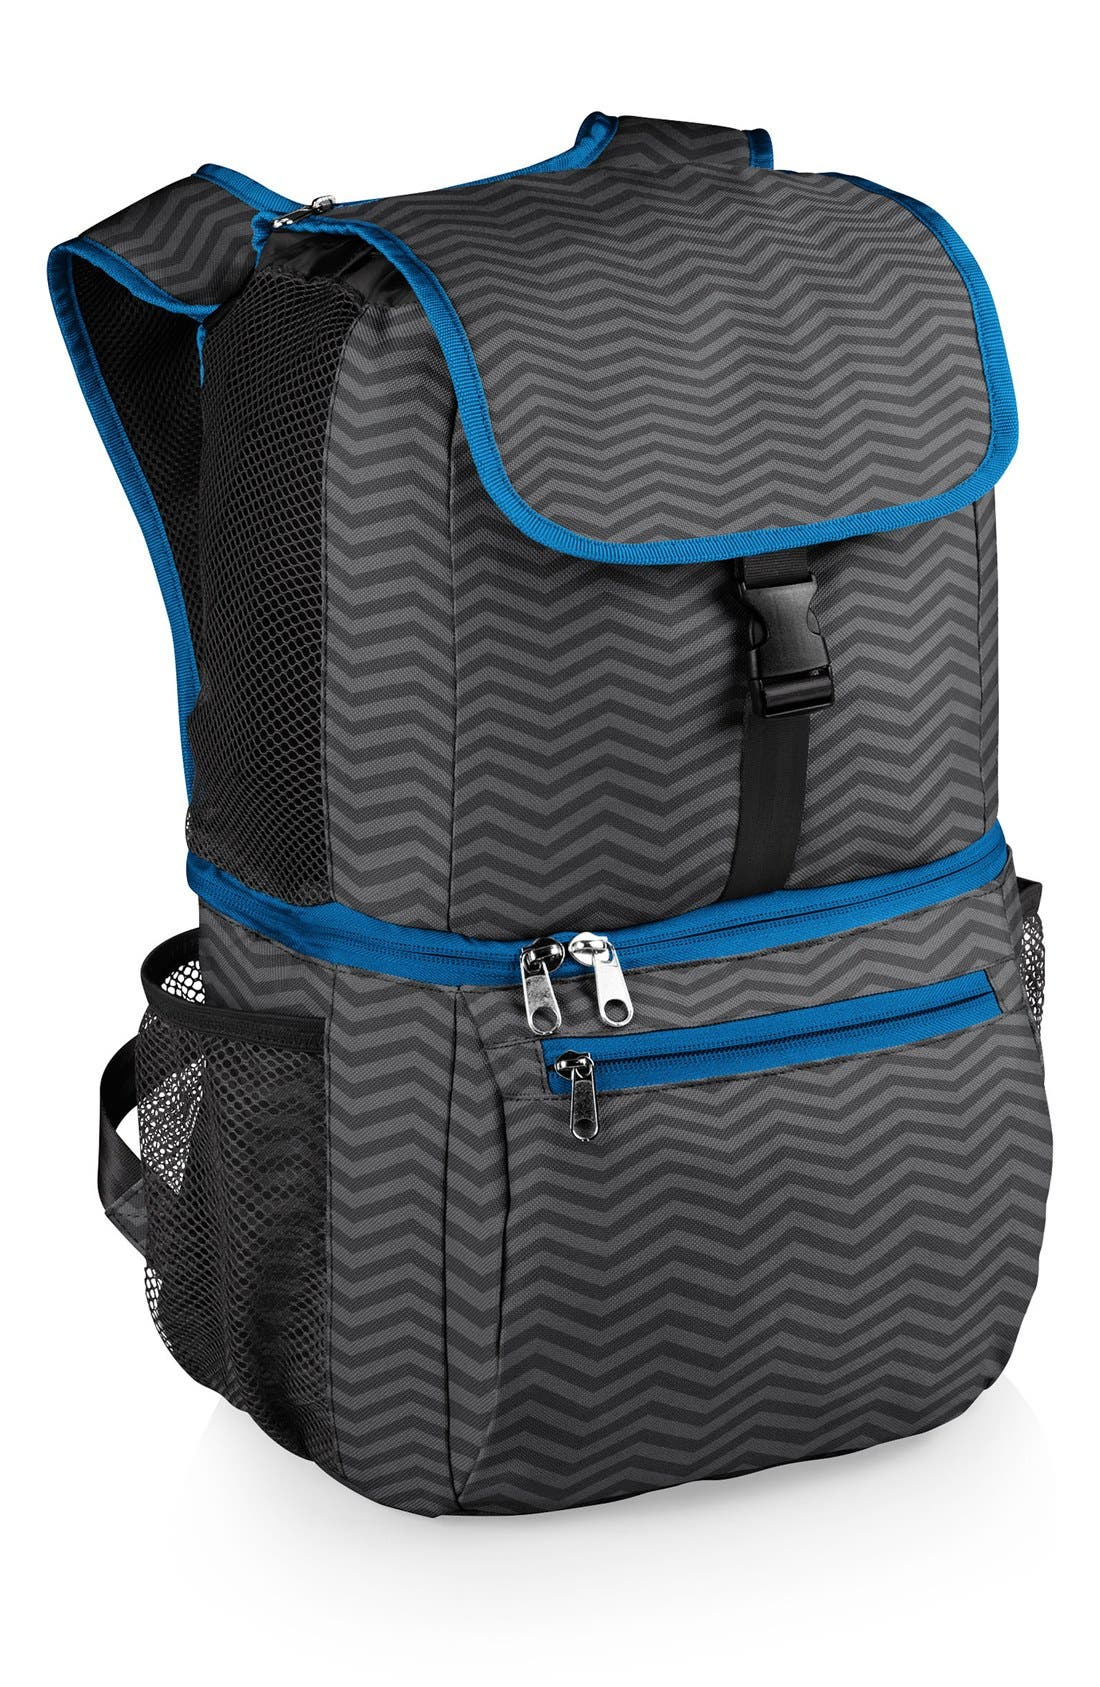 'Pismo' Insulated Cooler Backpack,                             Main thumbnail 1, color,                             Grey